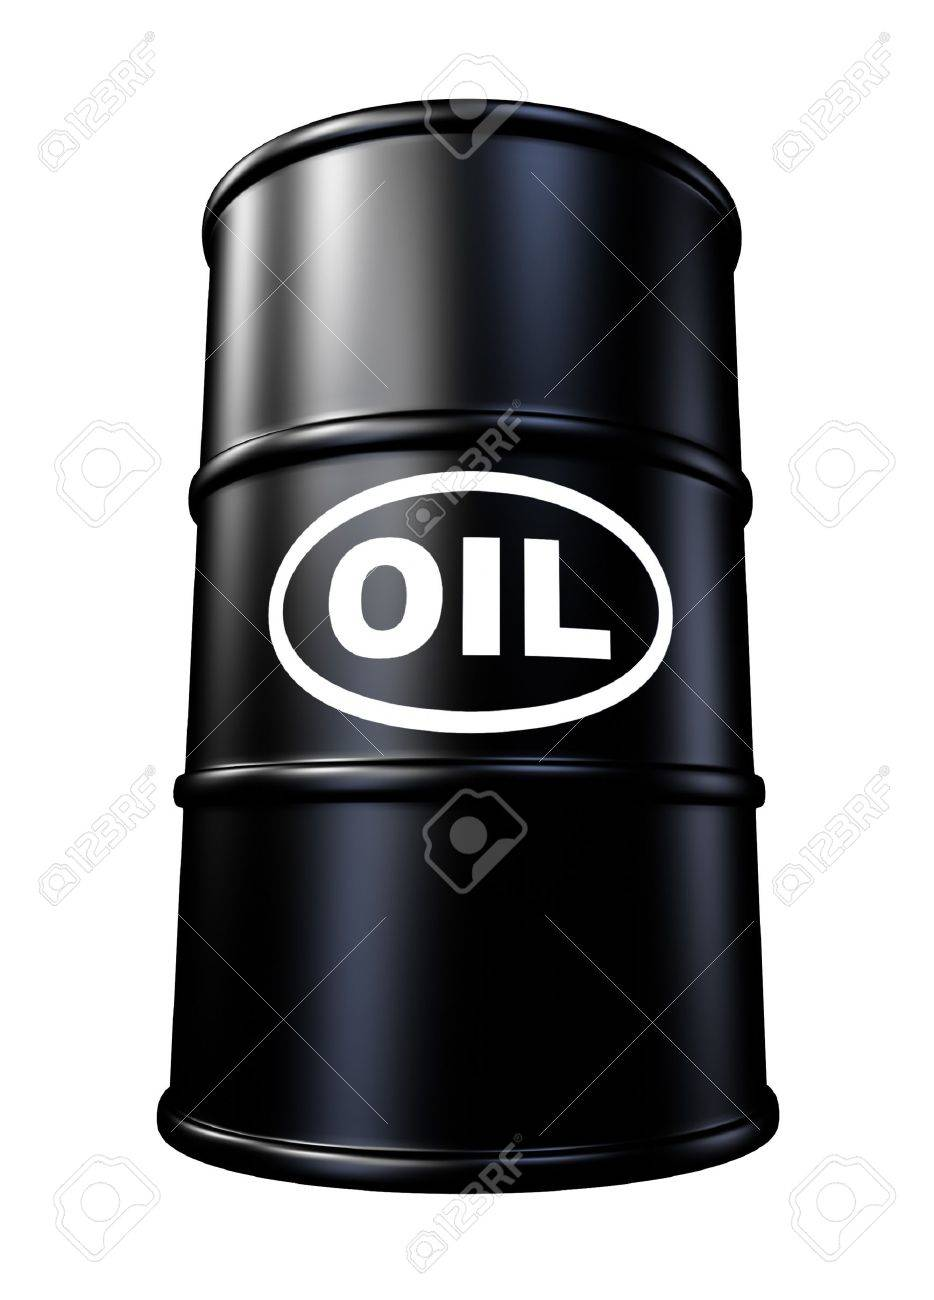 Oil barrels and drum containers representing the gasoline energy and fossil fuel industry. Stock Photo - 10945896